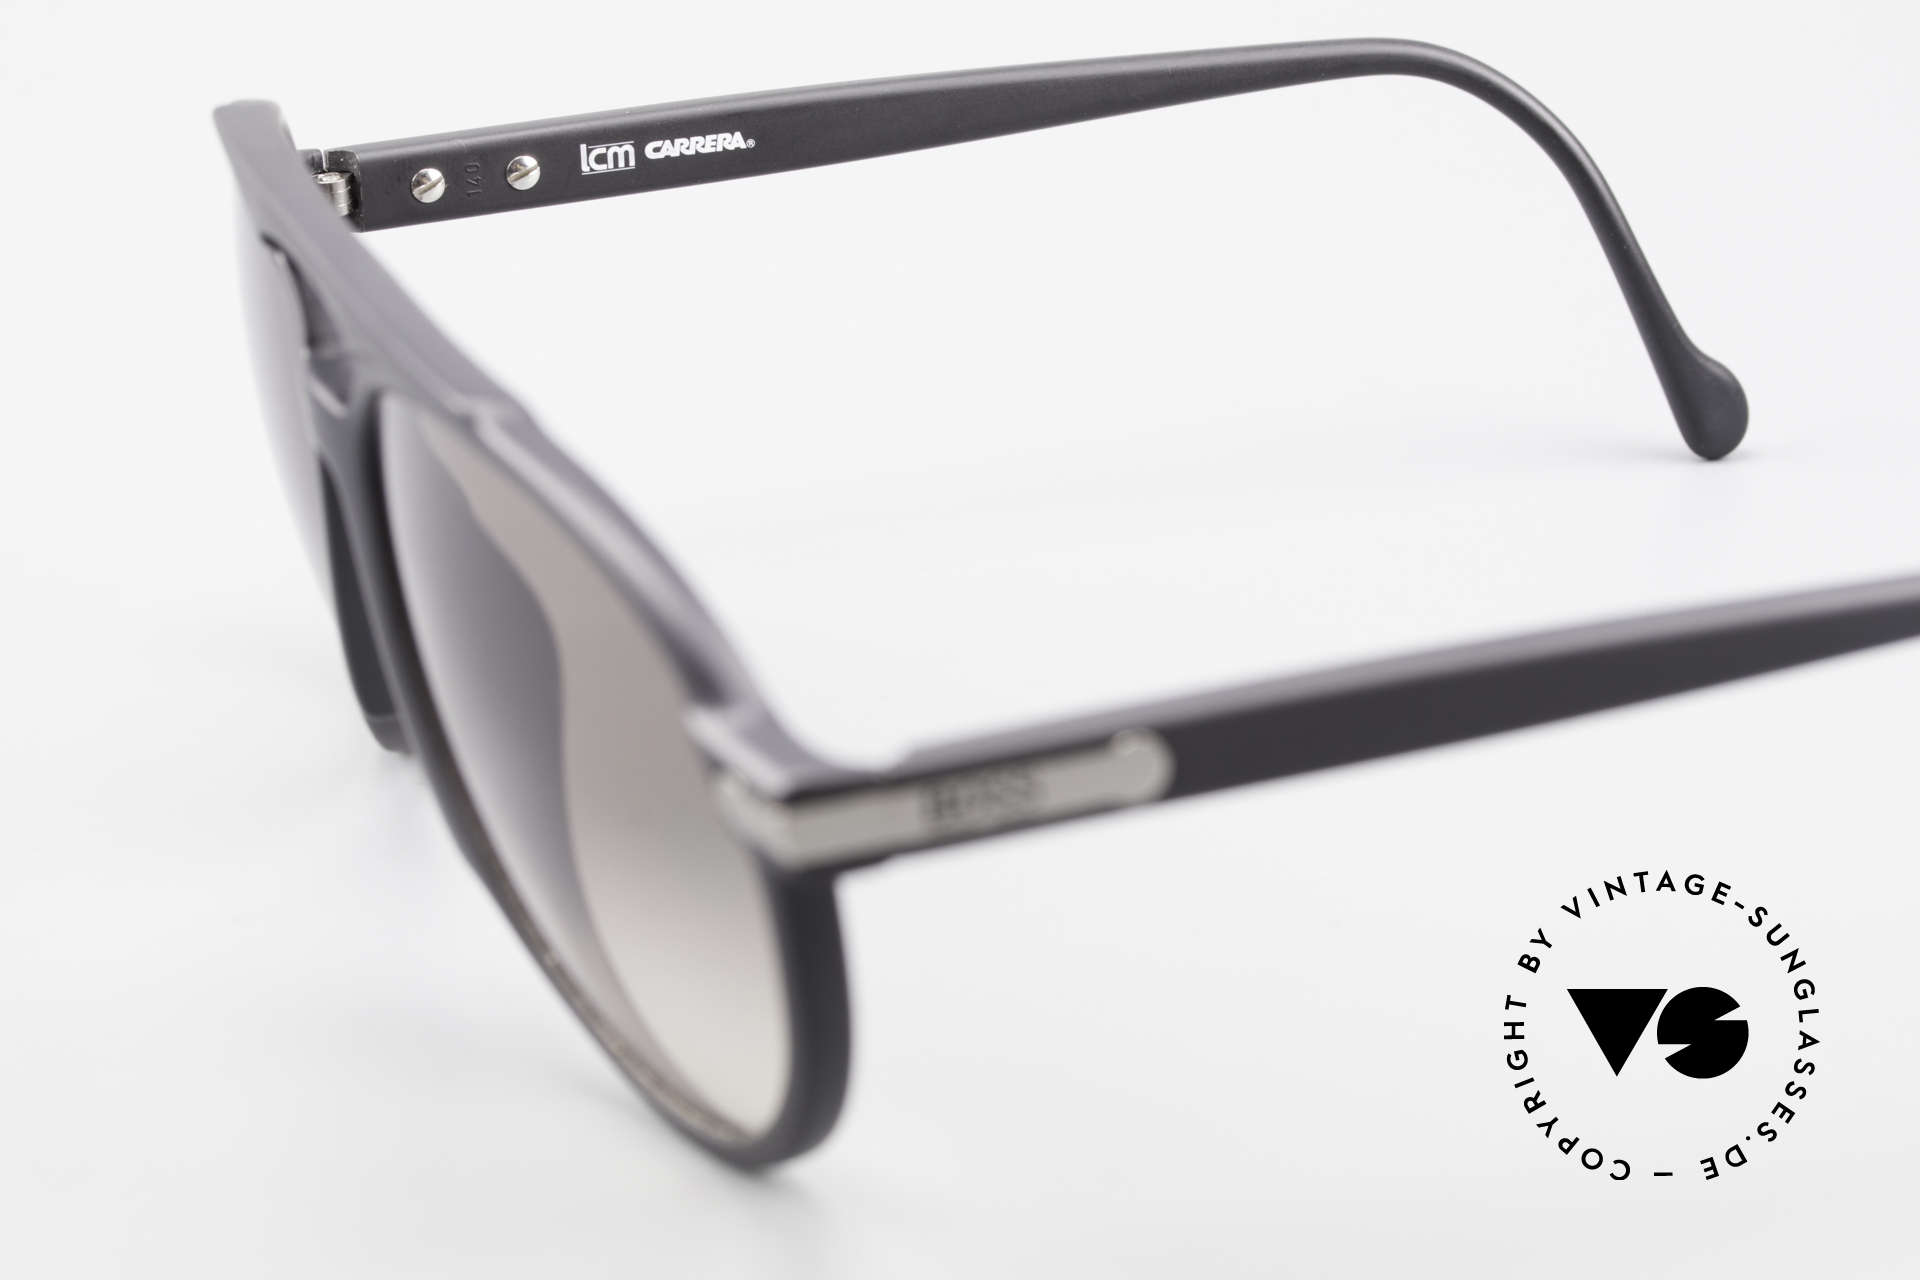 BOSS 5150 Vintage 90's Aviator Shades, unworn rarity; NO RETRO; authentic old classic, Made for Men and Women